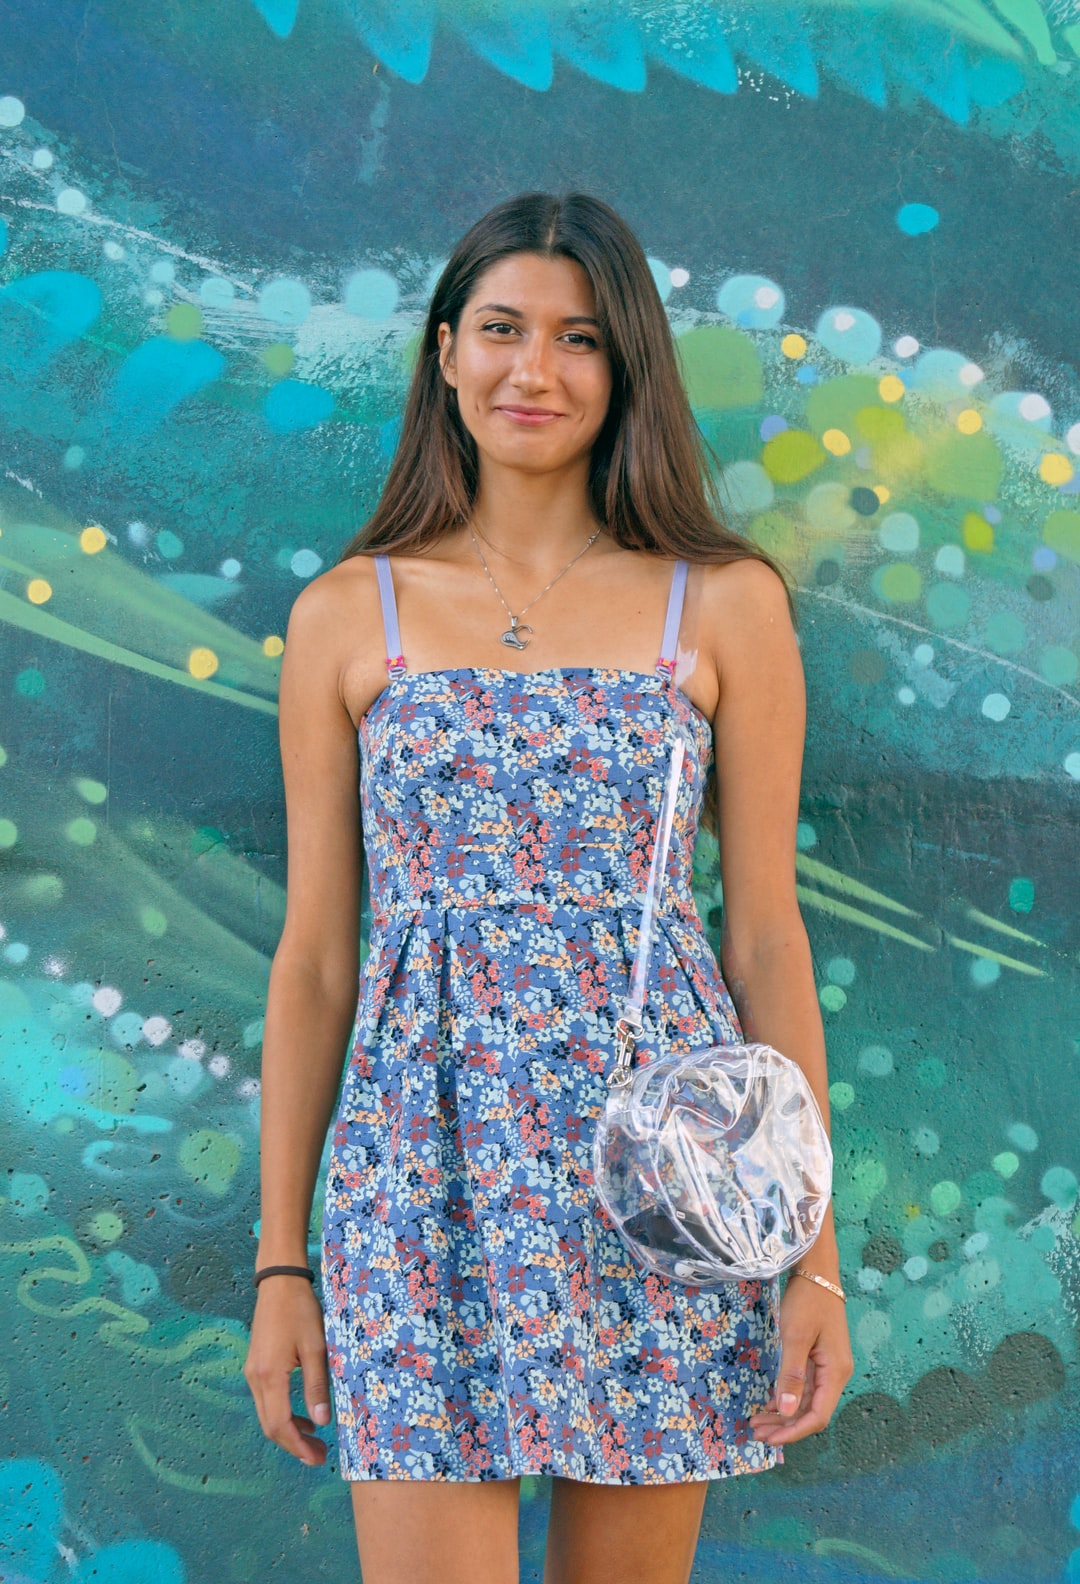 Smiling brunette girl in blue summer floral dress standing in front of turquoise graffiti with transparent clear bag